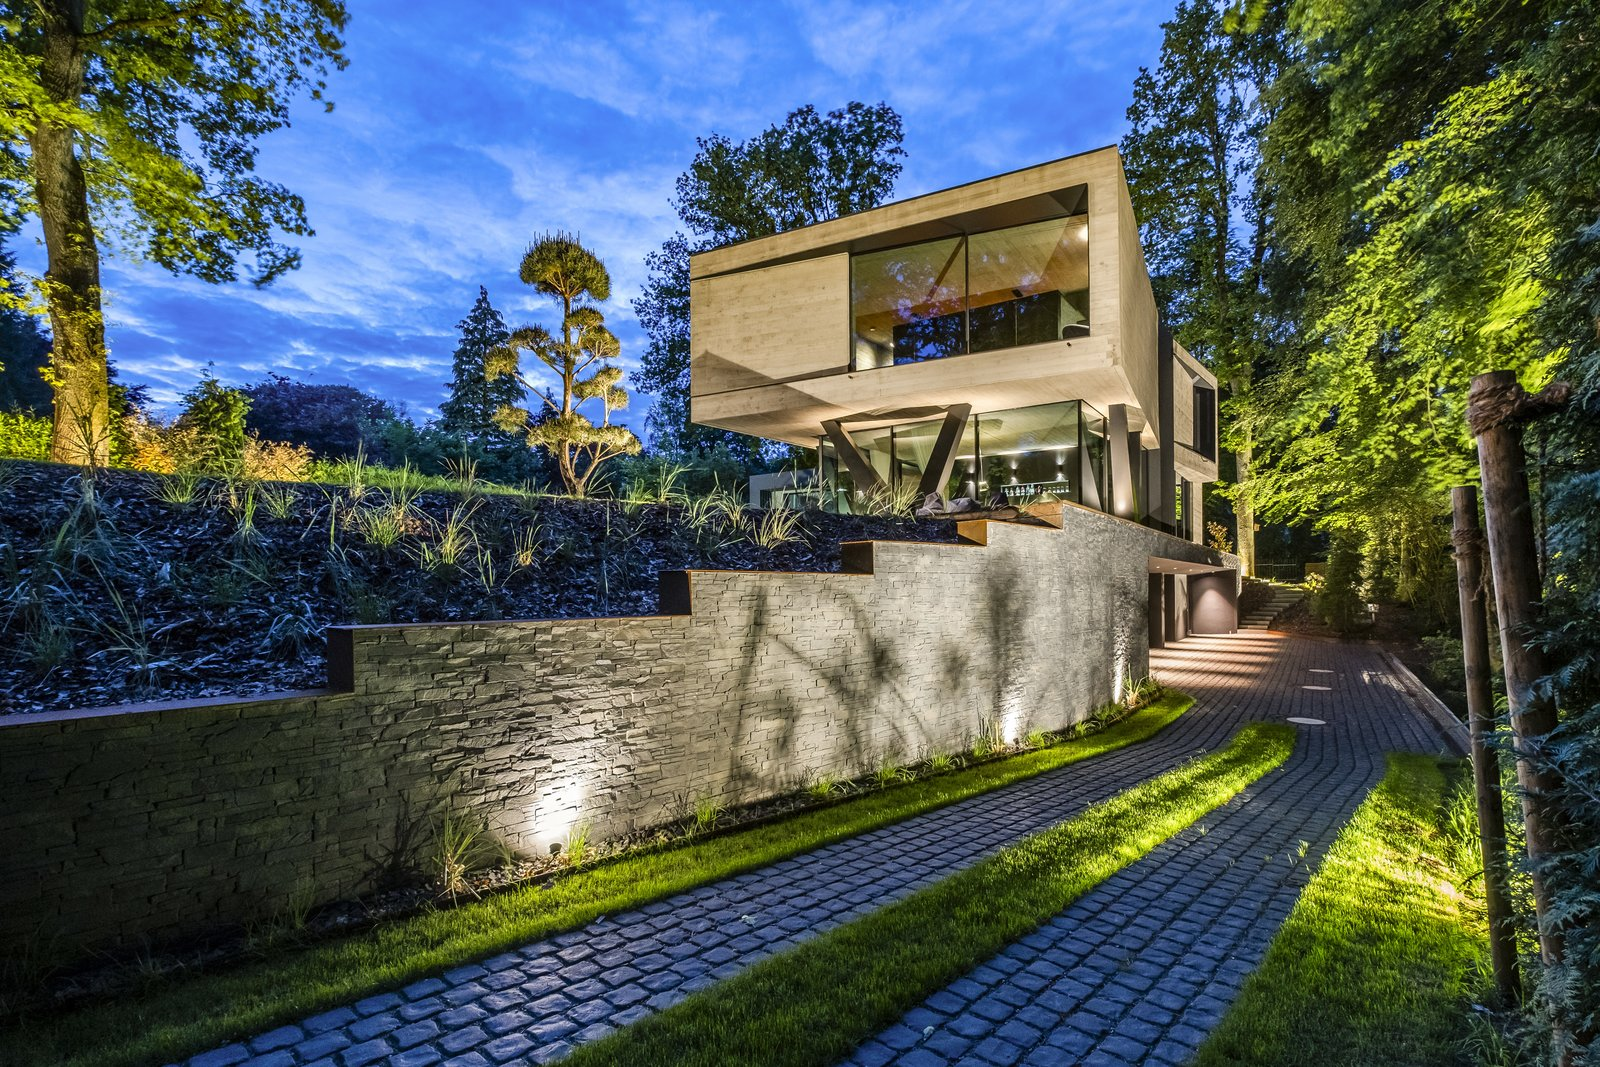 Exterior, Stone Siding Material, Concrete Siding Material, House Building Type, and Flat RoofLine  A Sculptural Abode in Germany Asks $3.59M